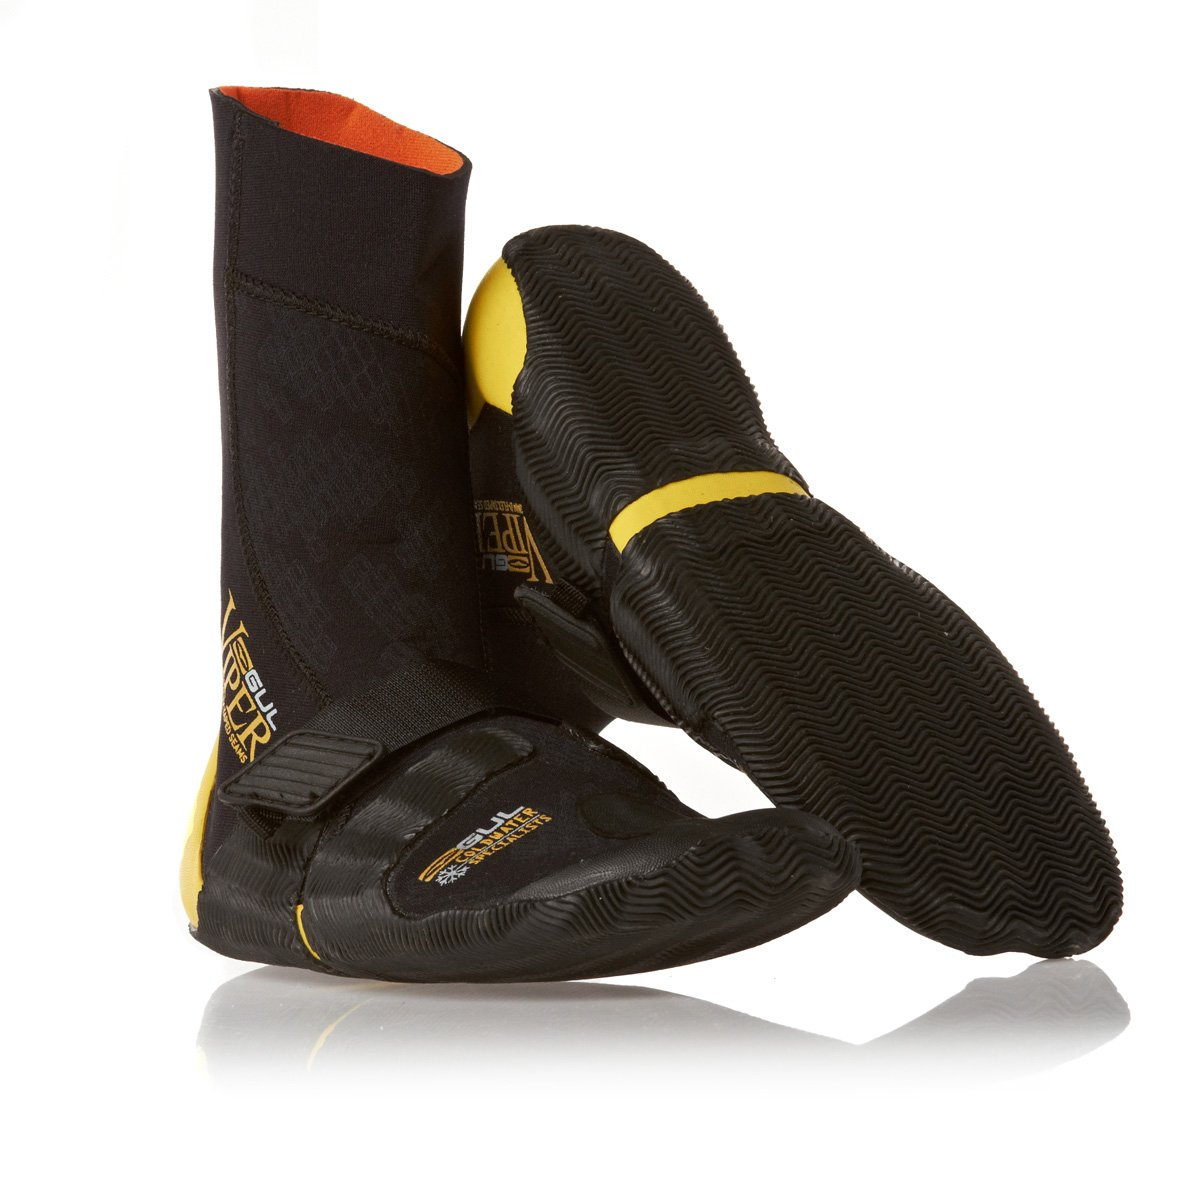 Gul Viper Boot Black/GOLD 3mm Split Toe Boot BO1253 Boot/Shoe Size UK - UK Size 5